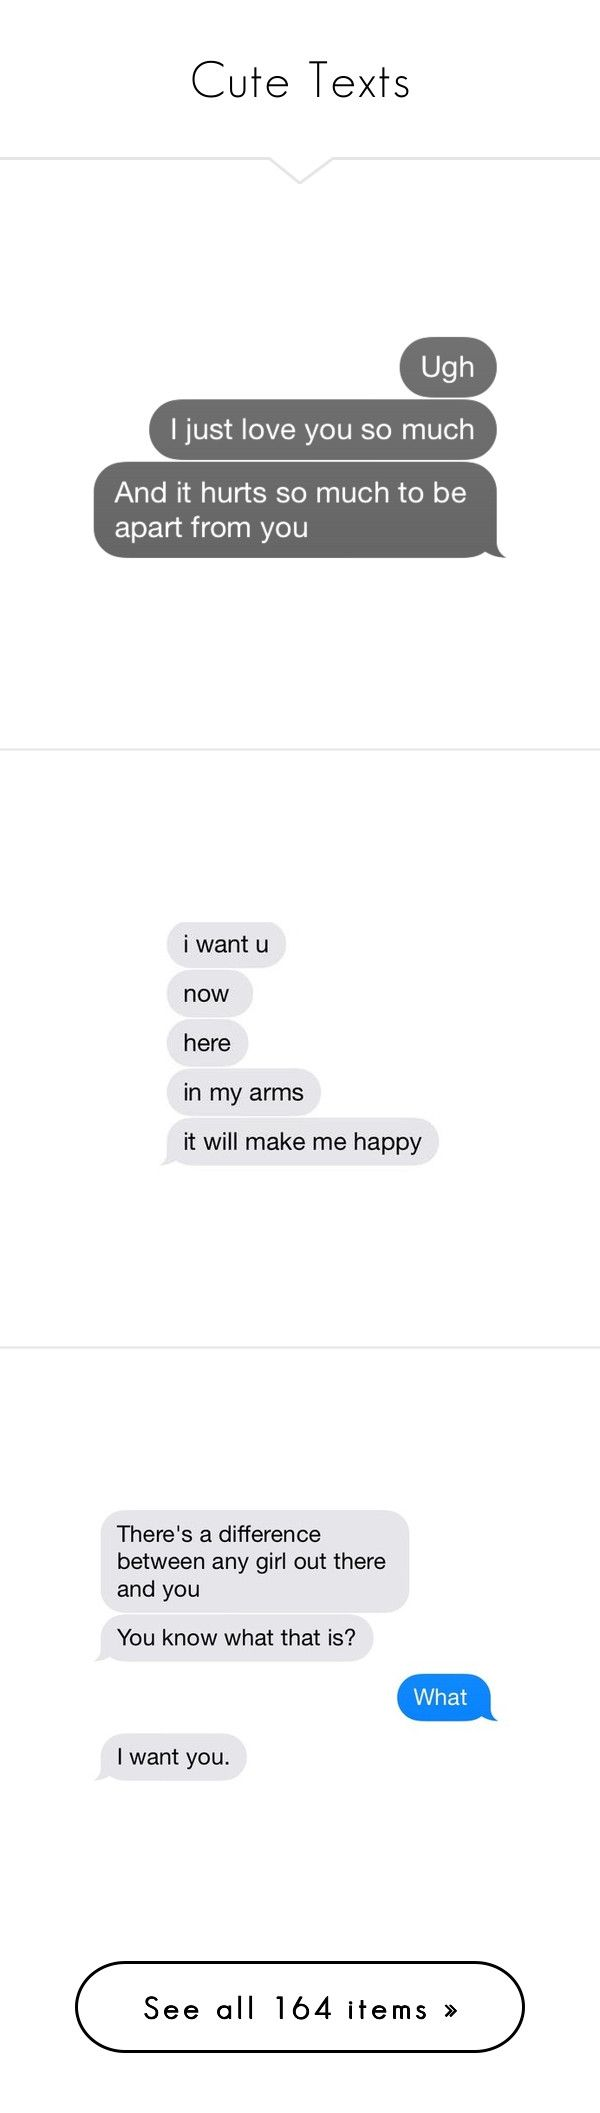 """""""Cute Texts"""" by purple-unicorn013 ❤ liked on Polyvore featuring fillers, text, quotes, other, text messages, phrase, saying, words, pics and emojis & texts"""